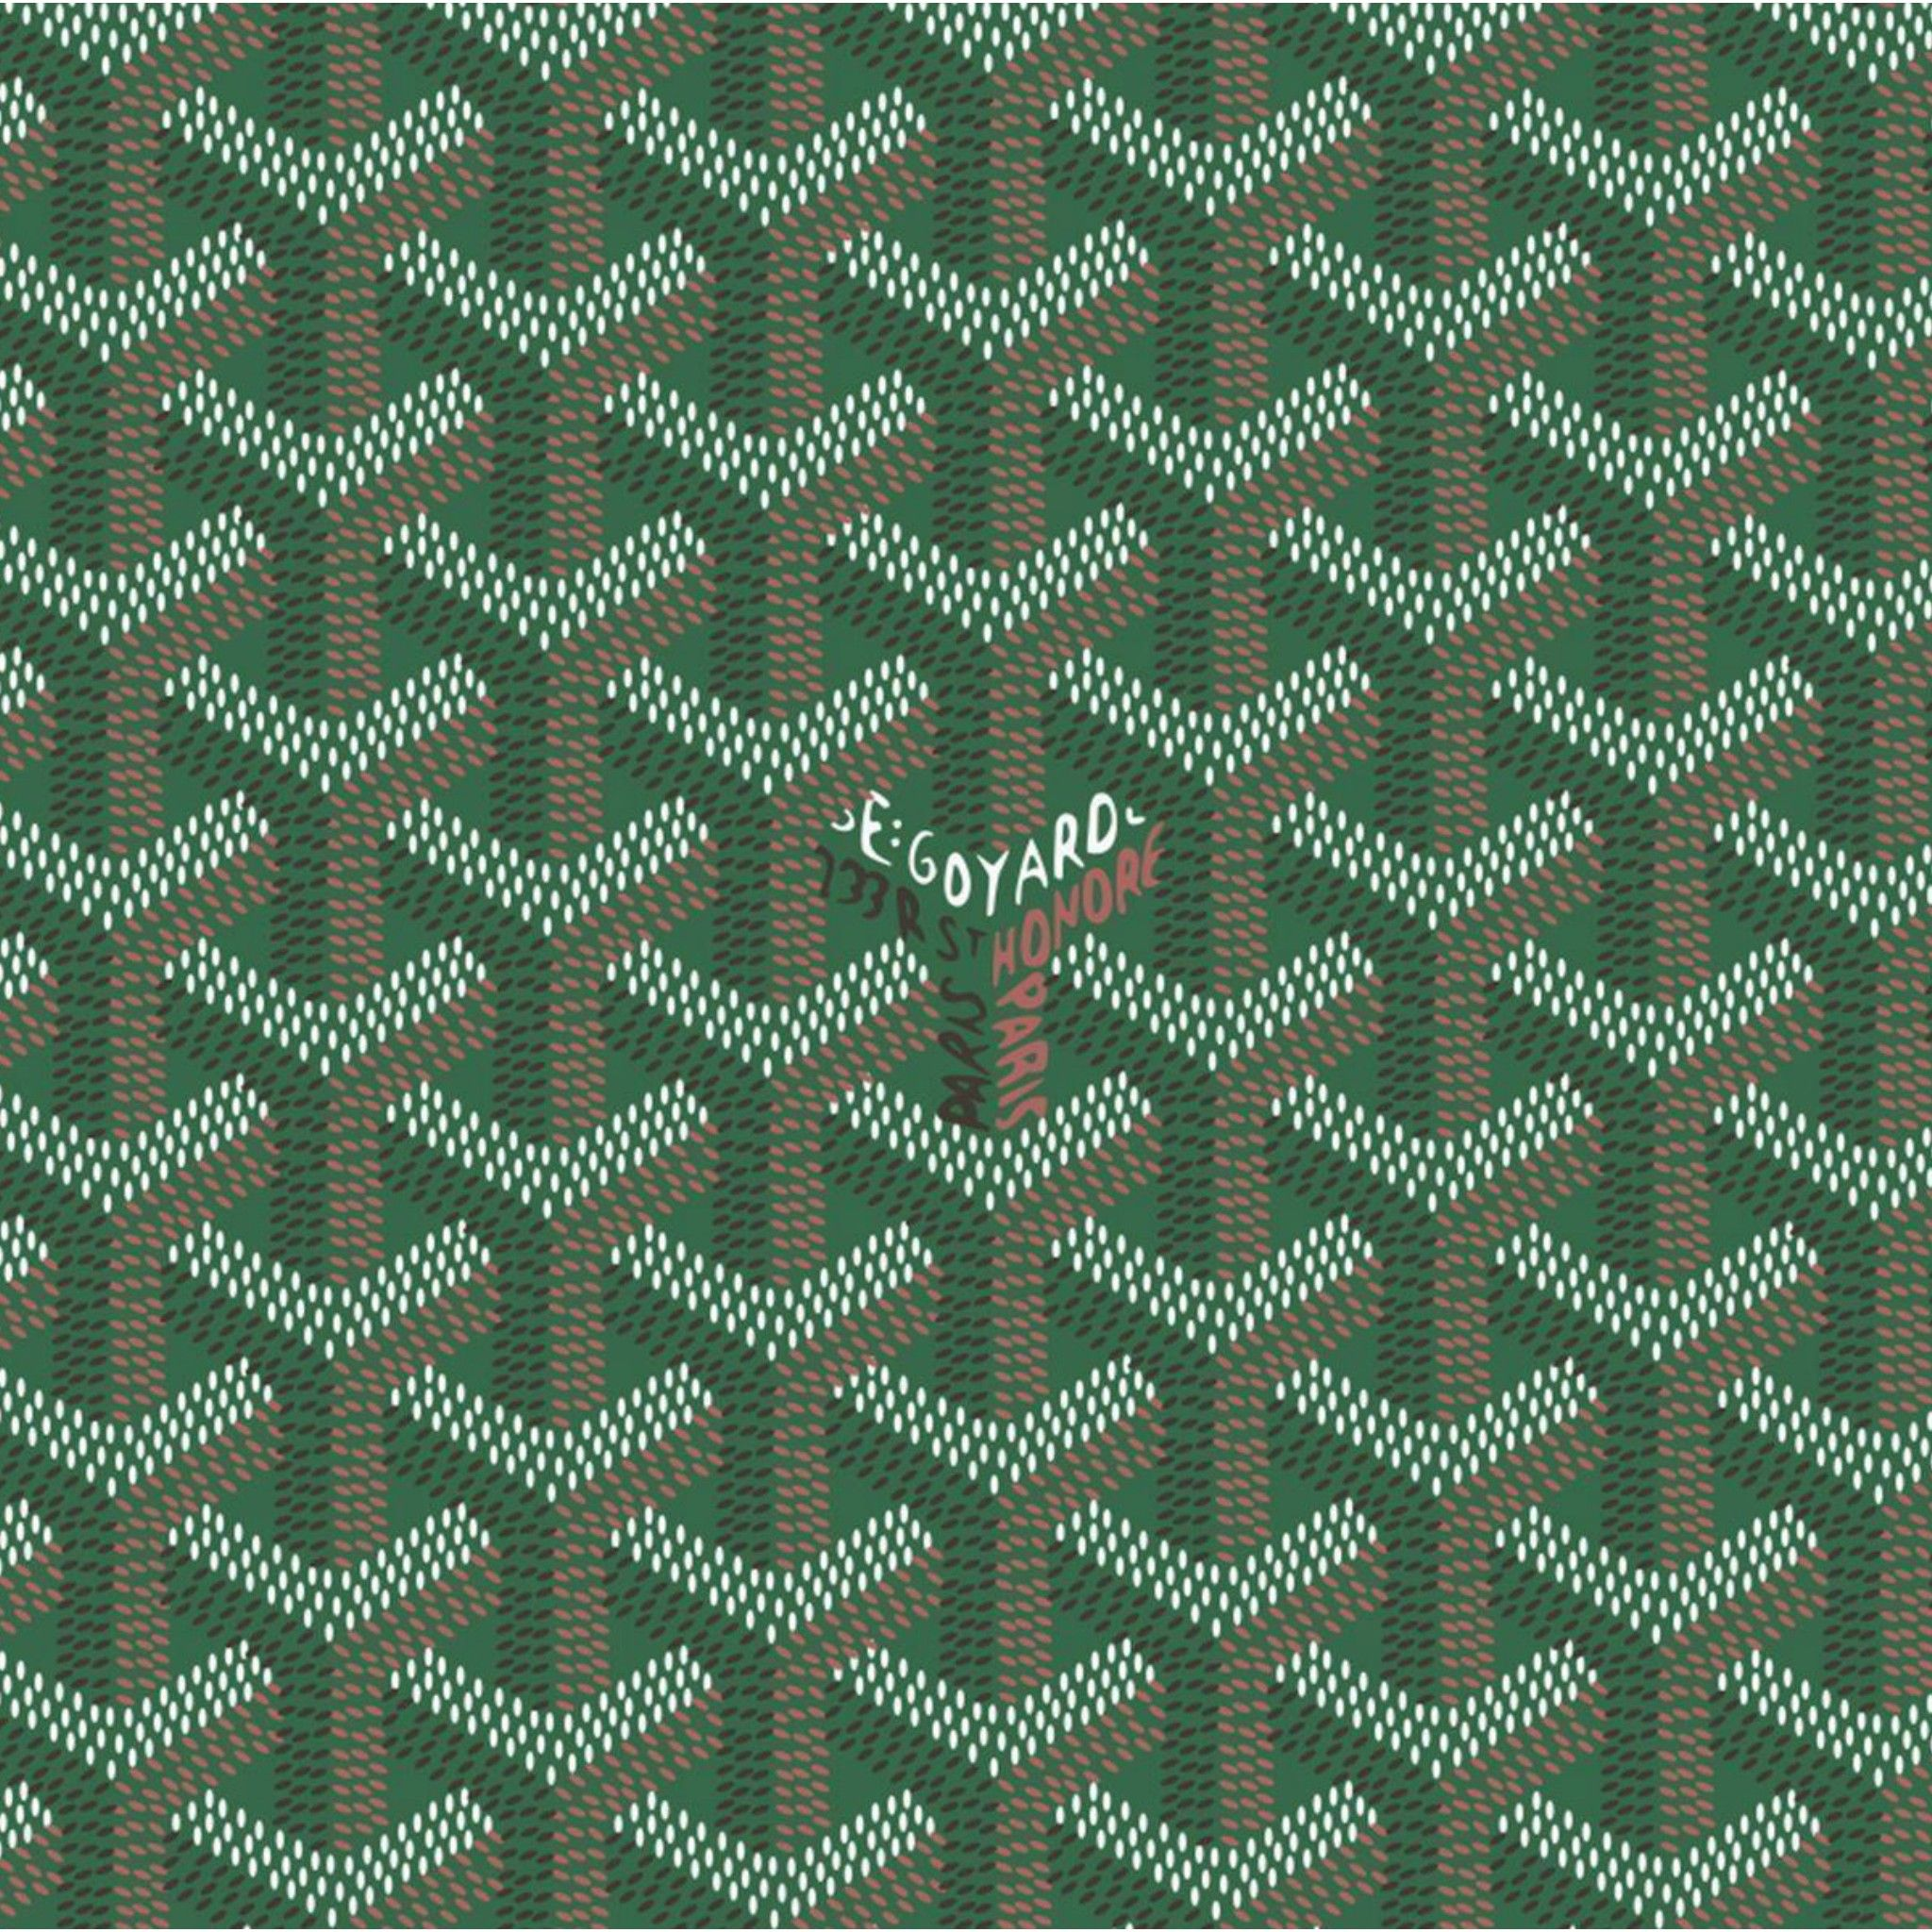 Green Goyard Pattern Tap To See More Goyard Wallpapers Mobile9 Goyard Pattern Hype Wallpaper Iphone Homescreen Wallpaper